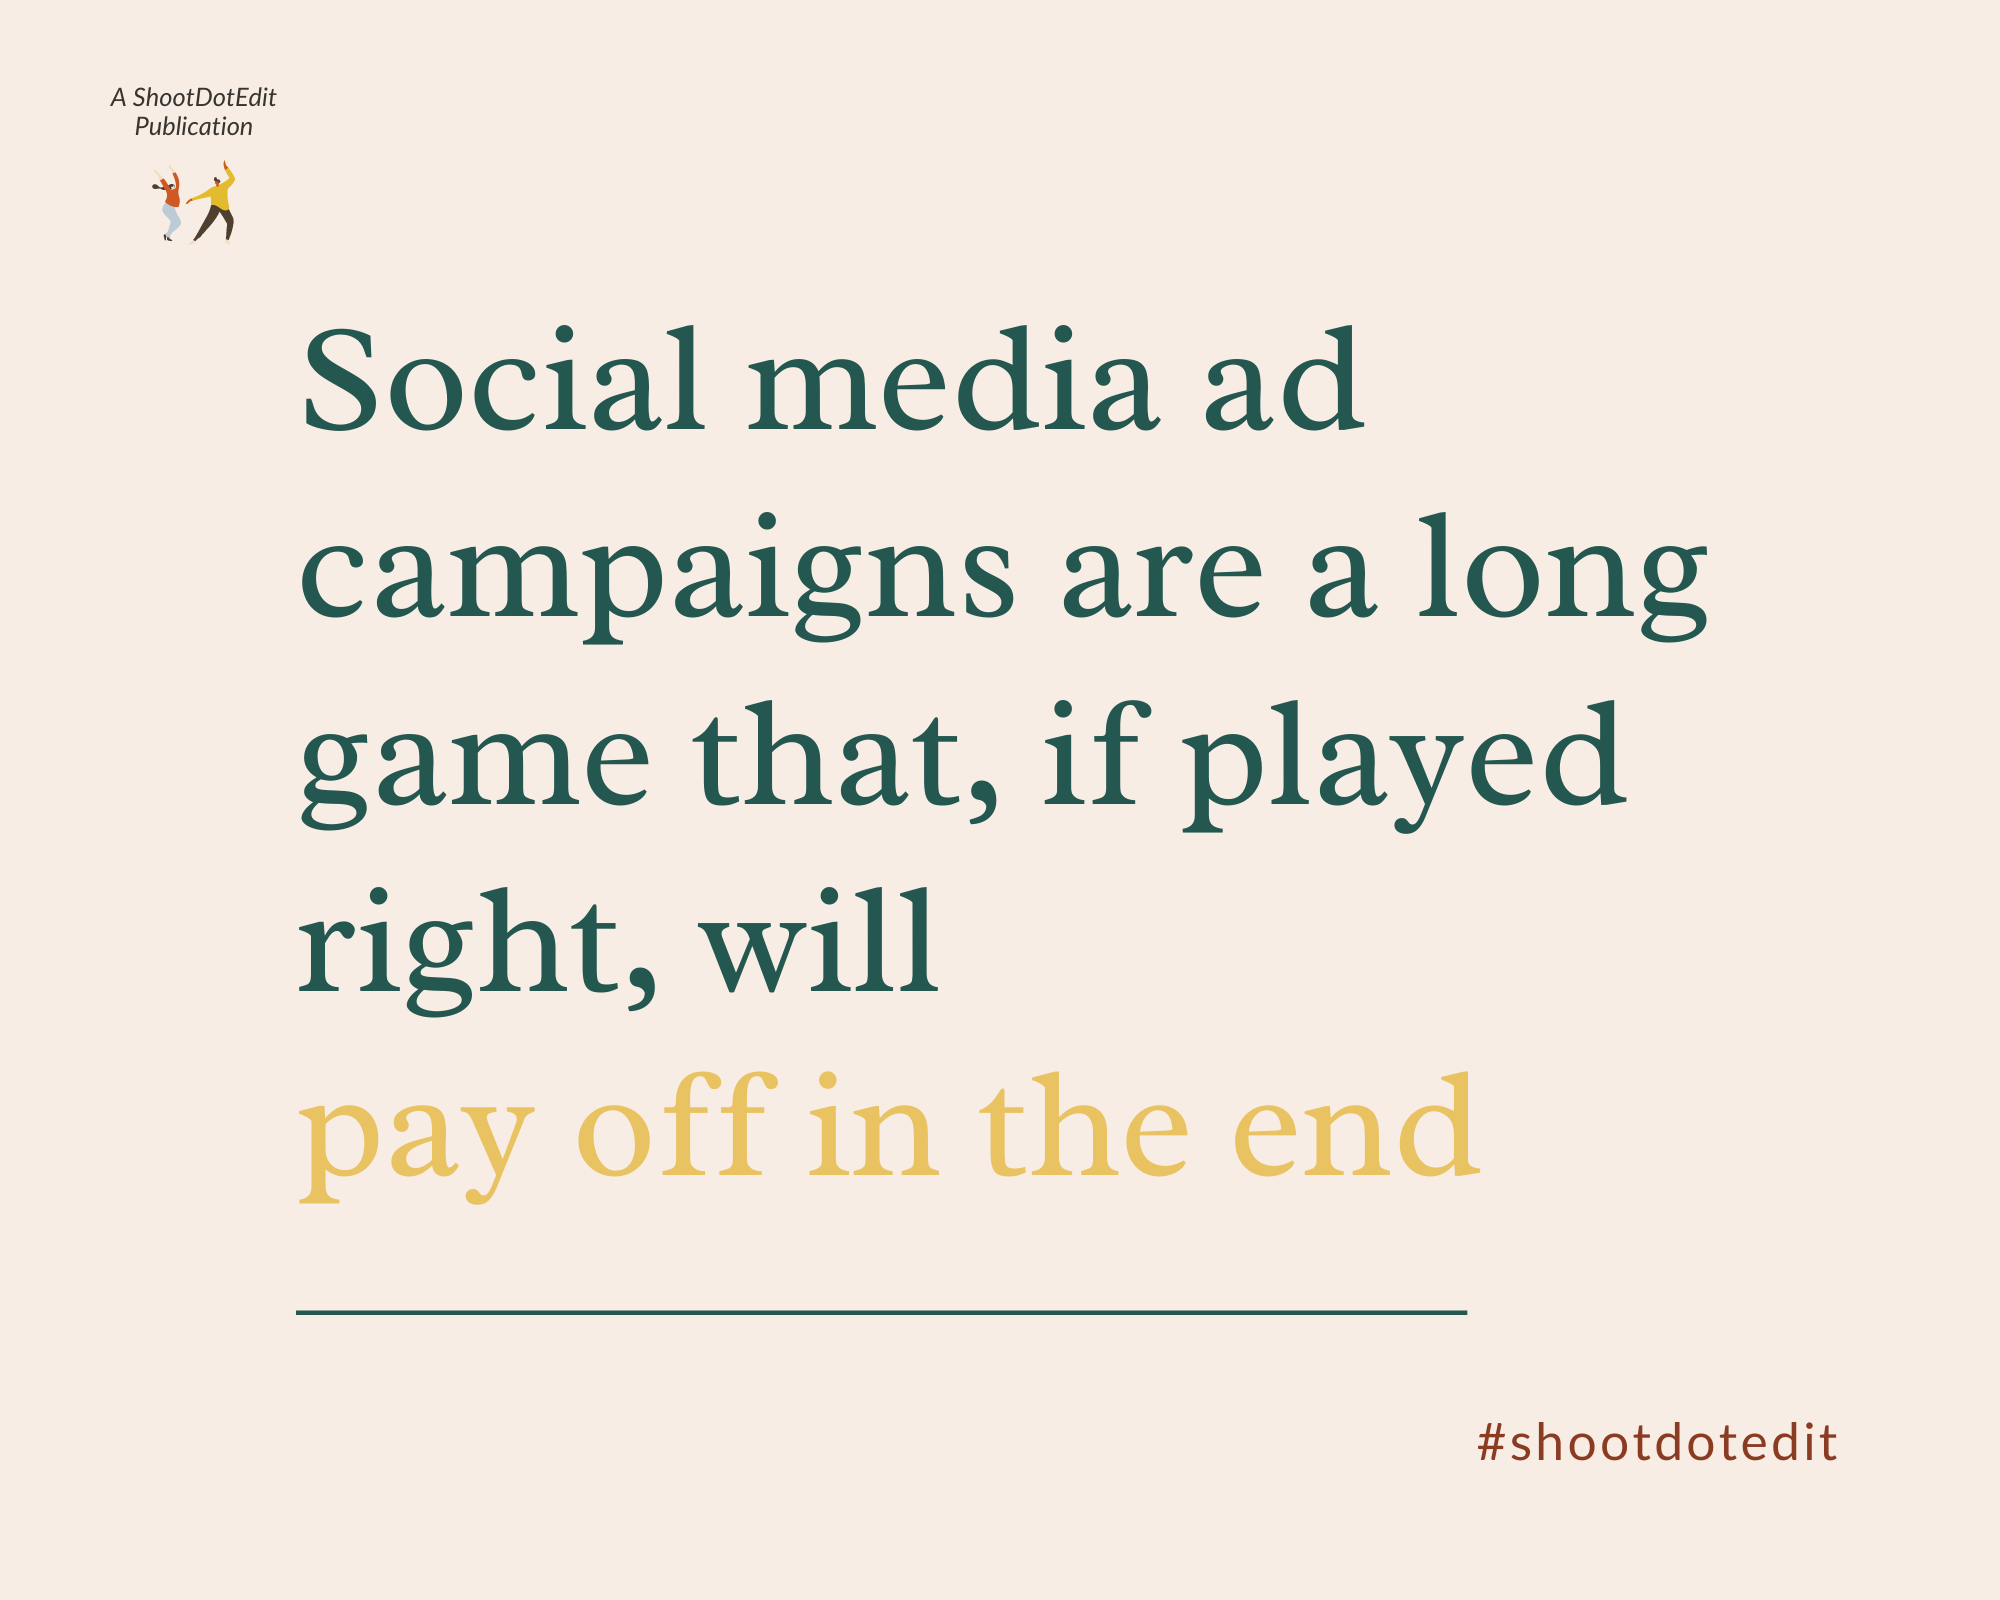 Infographic stating social media ad campaigns are a long game that, if played right, will pay off in the end